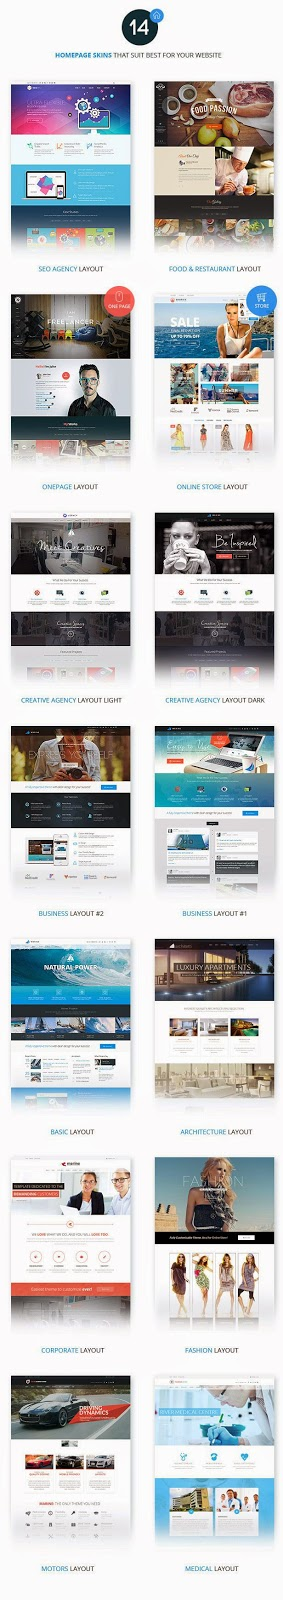 Multipurpose Bootstrap HTML5 Template 2015